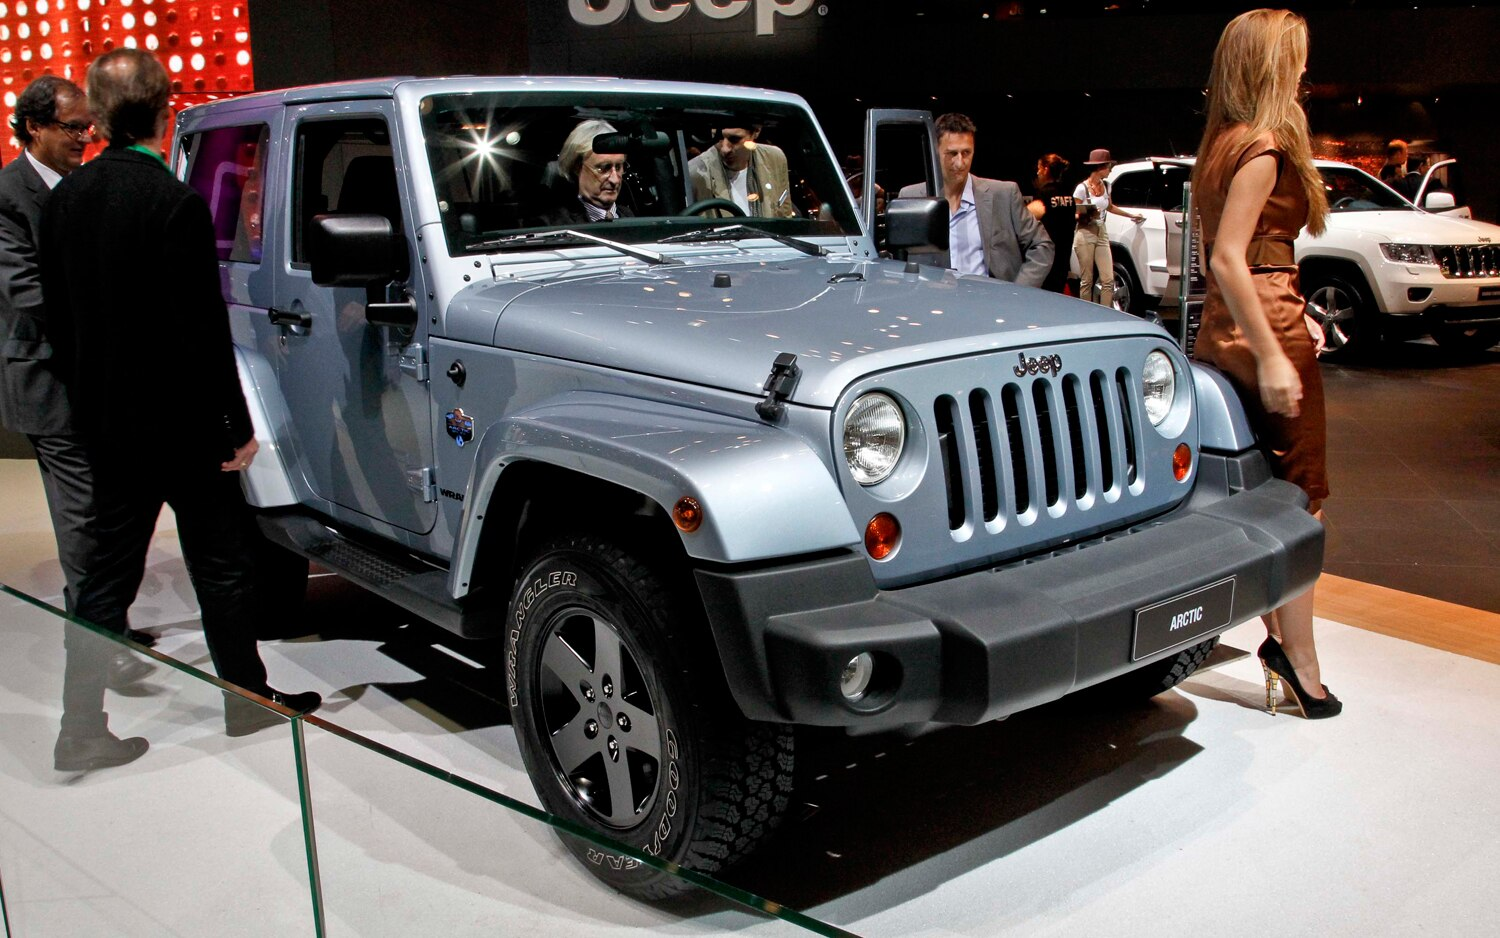 first look: 2012 jeep wrangler arctic edition - automobile magazine